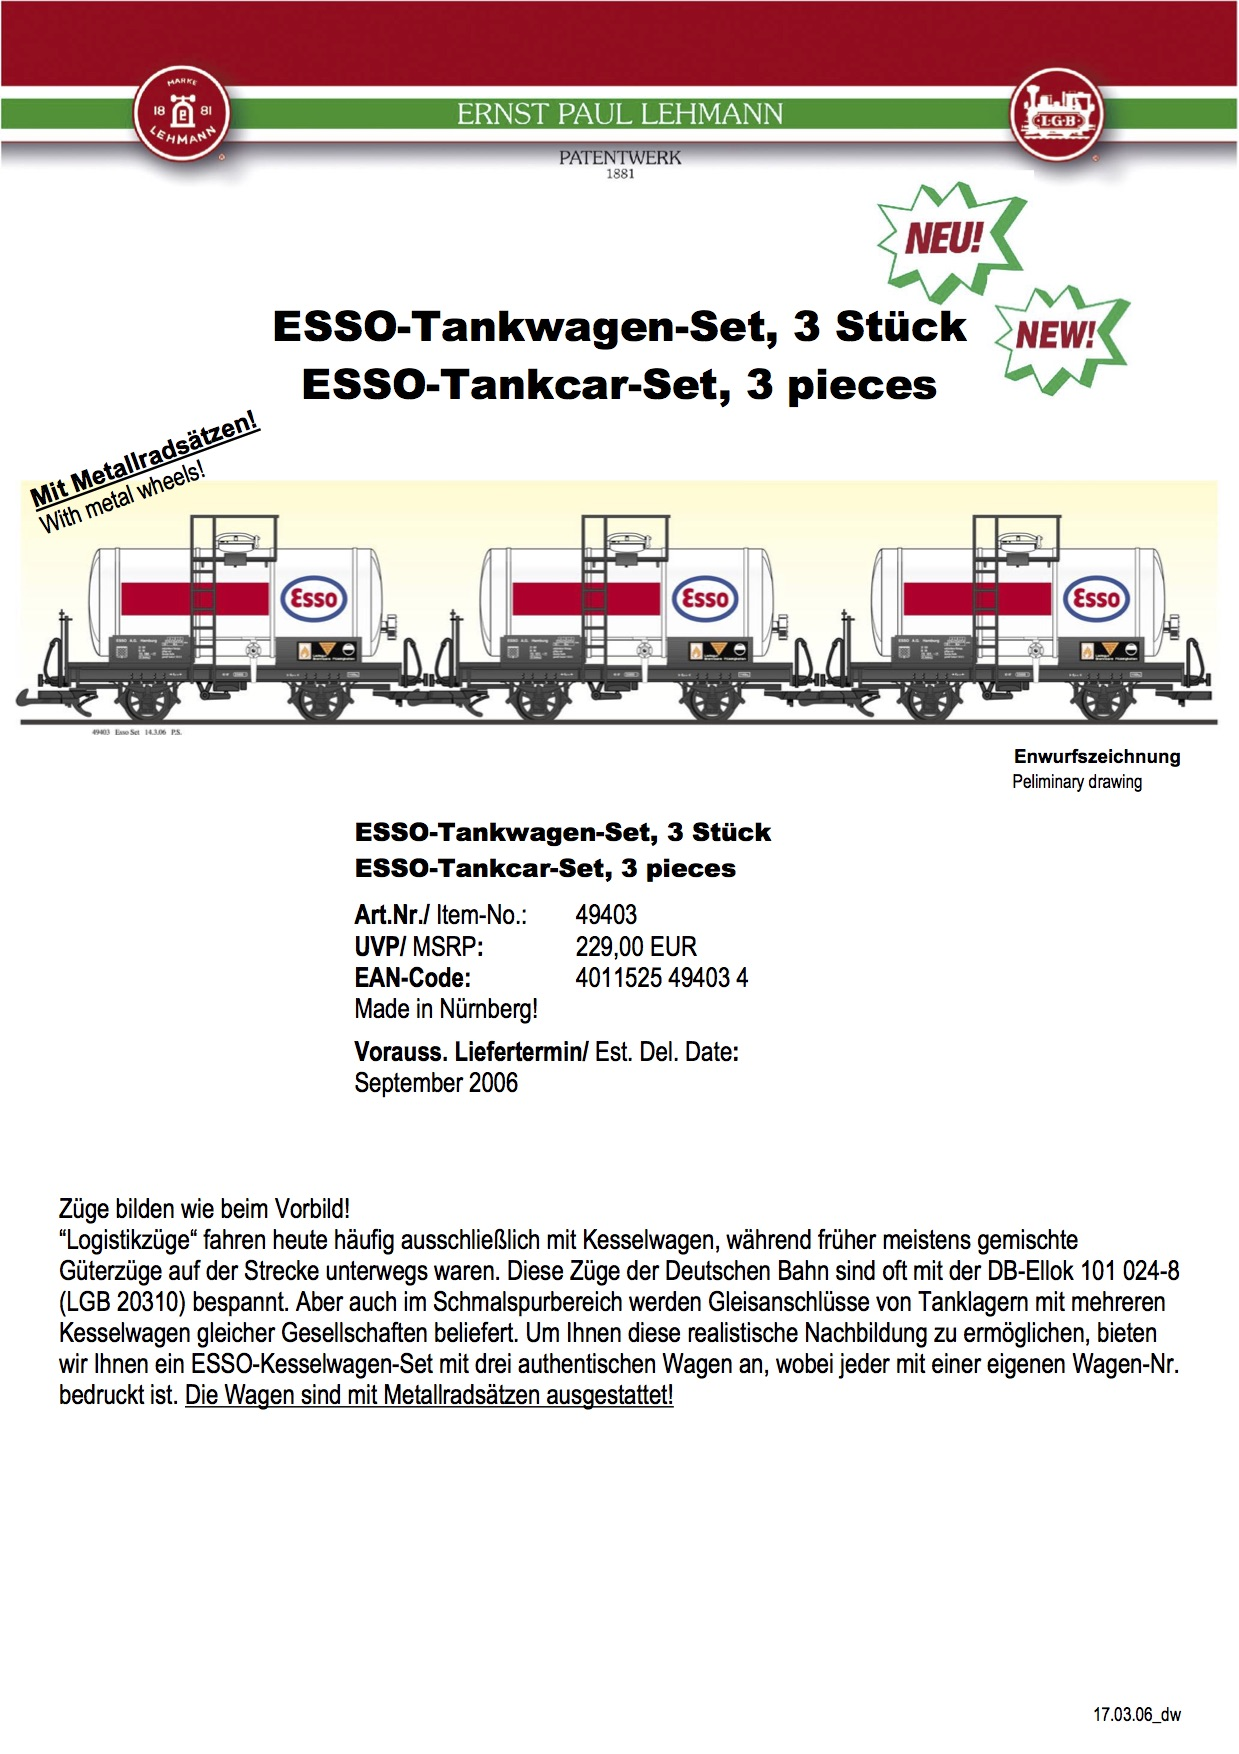 LGB Infoblatt (Information flyer) 2006 - Item 49403 Esso Tankwagen-Set (Tank Car Set)